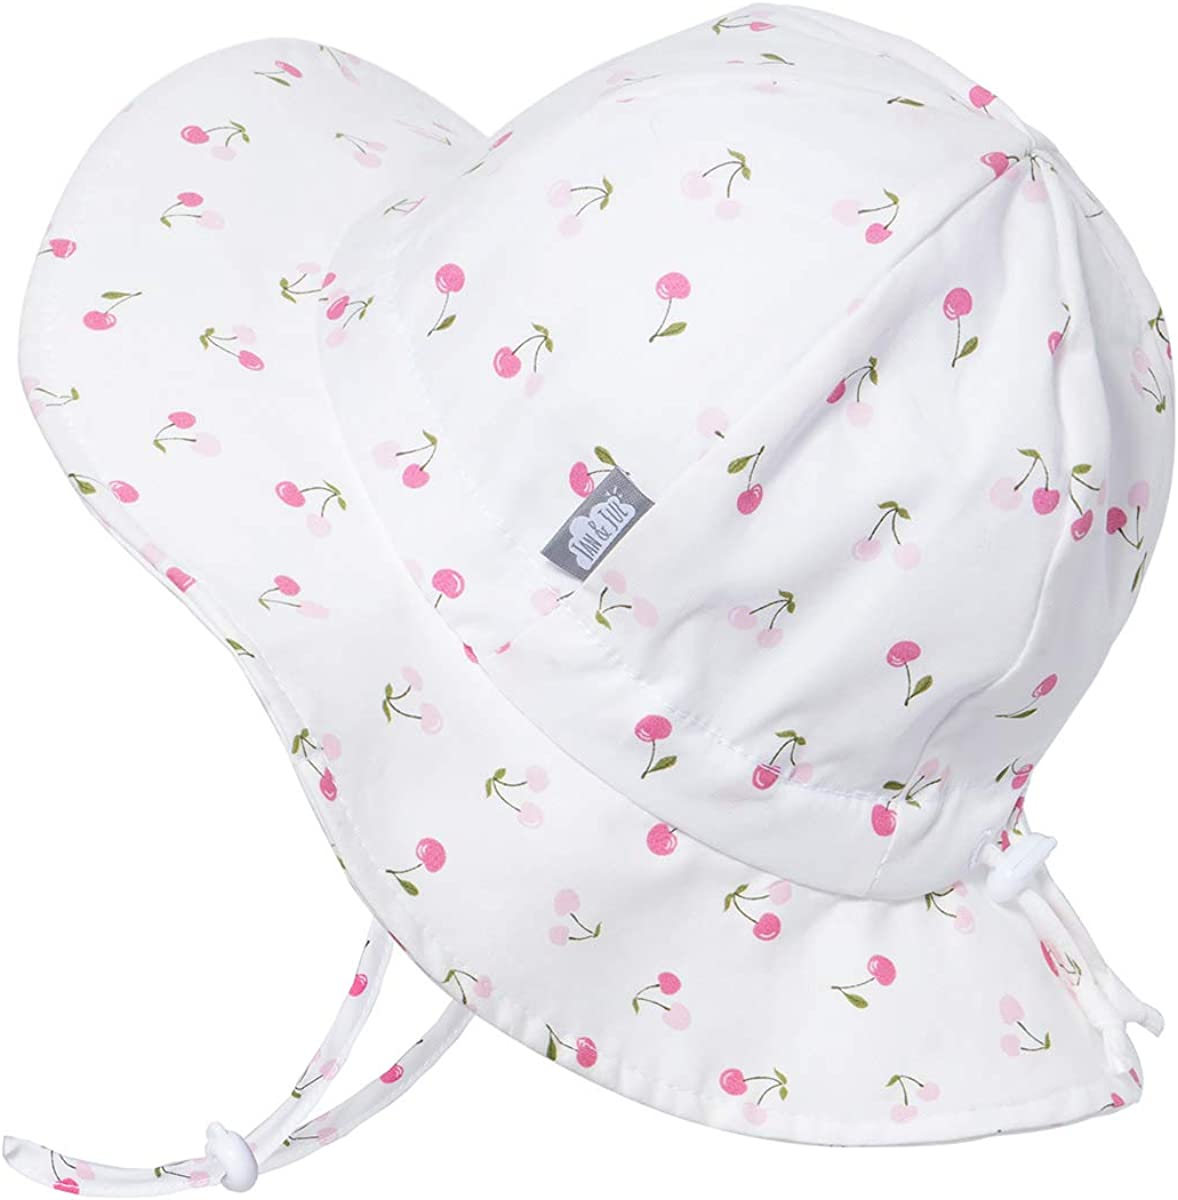 Adjustable Straps Girl Or Boy 50+UPF Jan /& Jul Kids Cotton Floppy Sun-Hat for Baby and Toddler